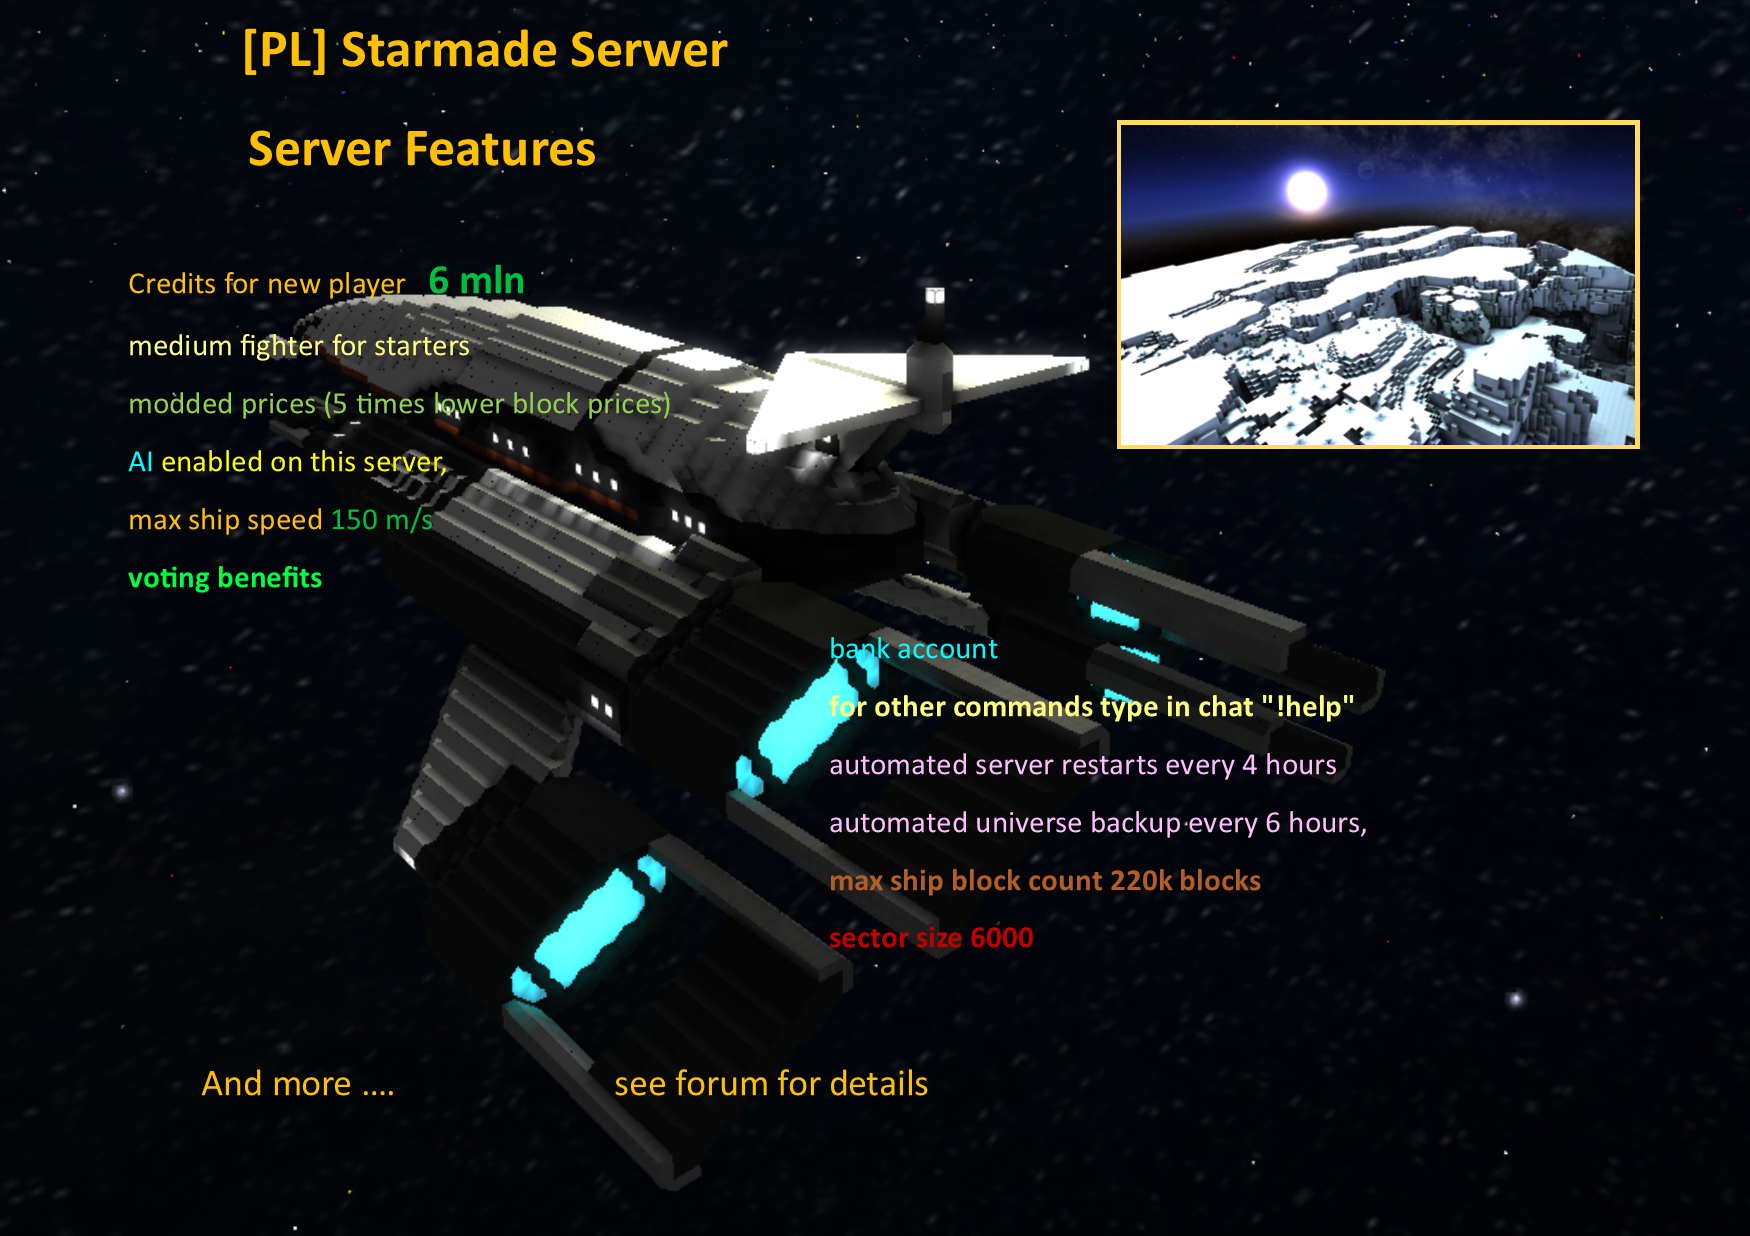 Server Features Image